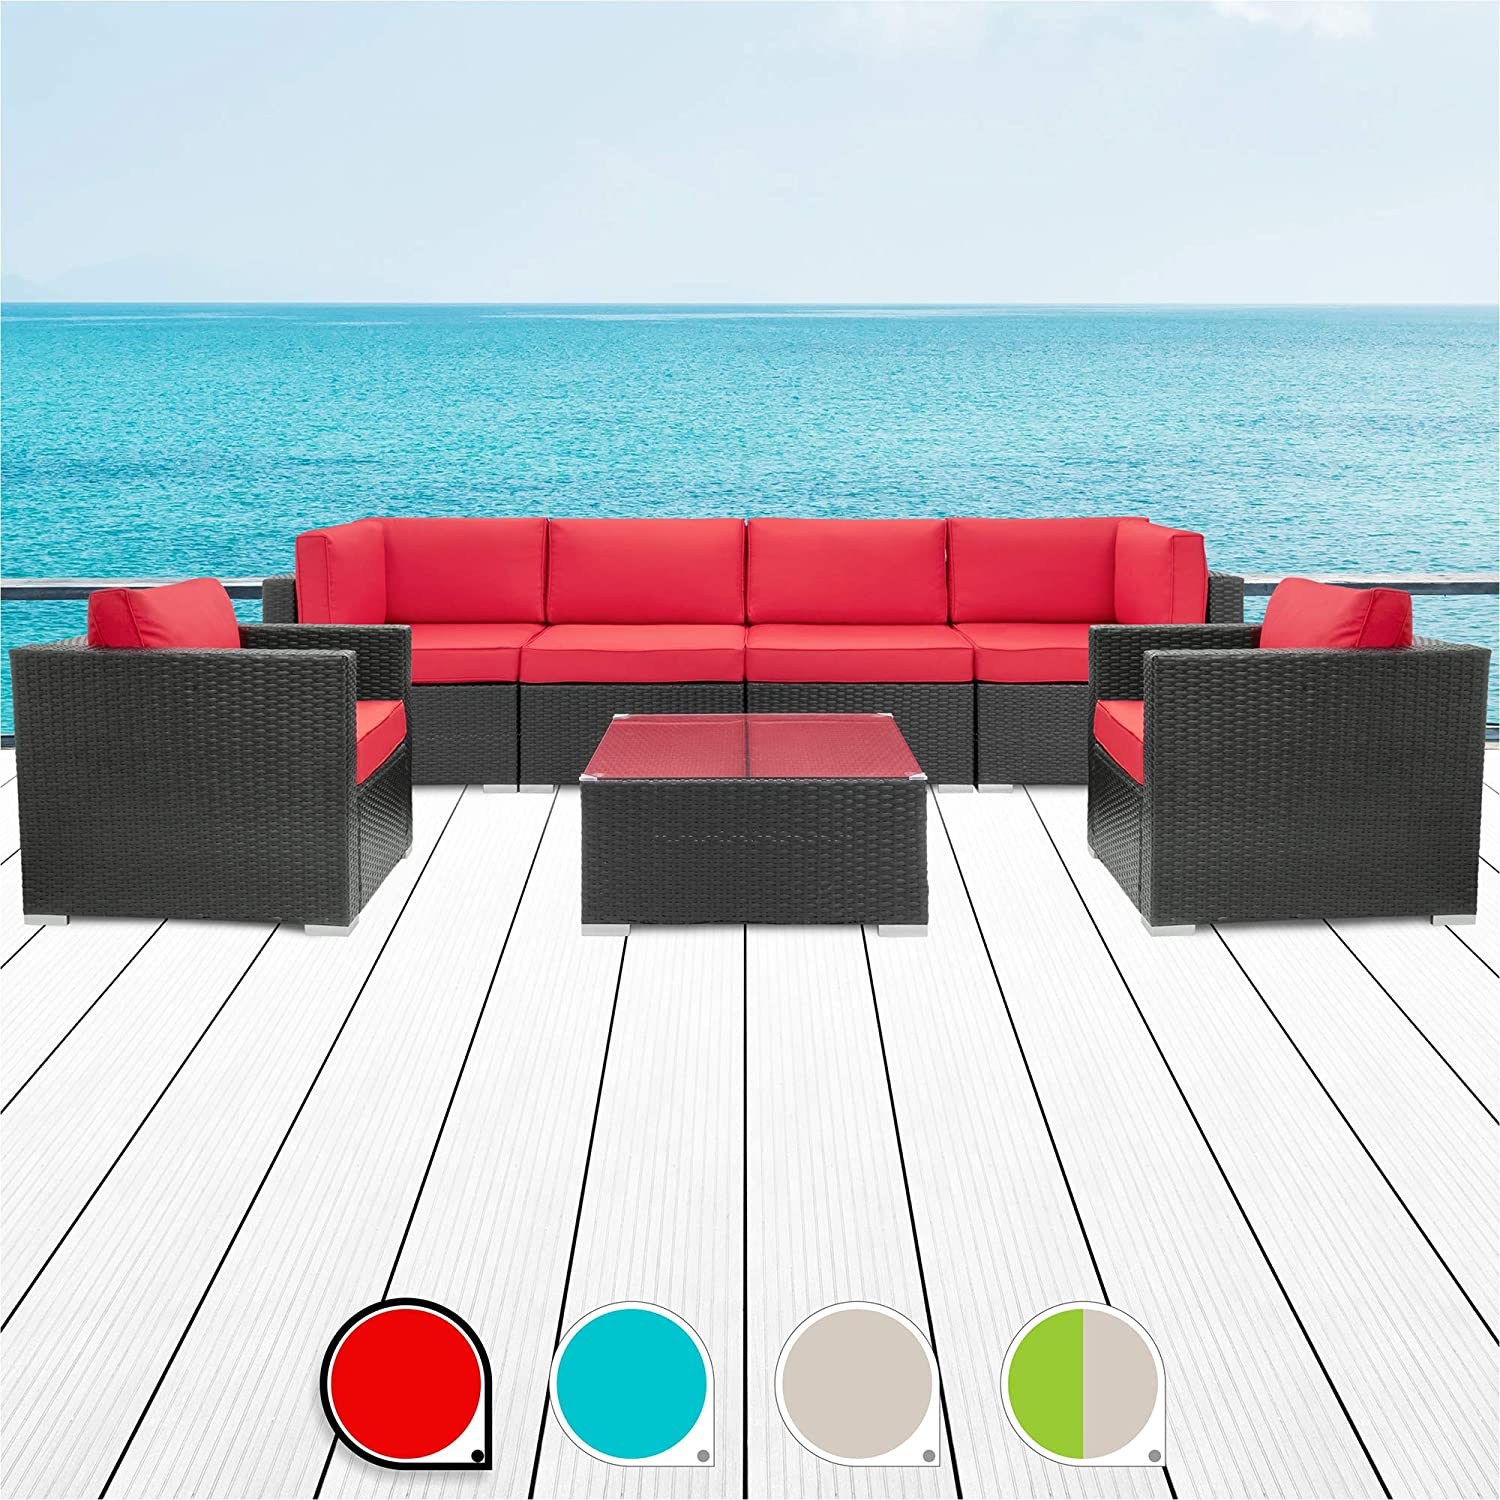 Walsunny 7pcs Patio Outdoor Furniture Sets,Low Back All-Weather Rattan Sectional Sofa with Tea Table Washable Couch Cushions Black Rattan Red Armrest Version